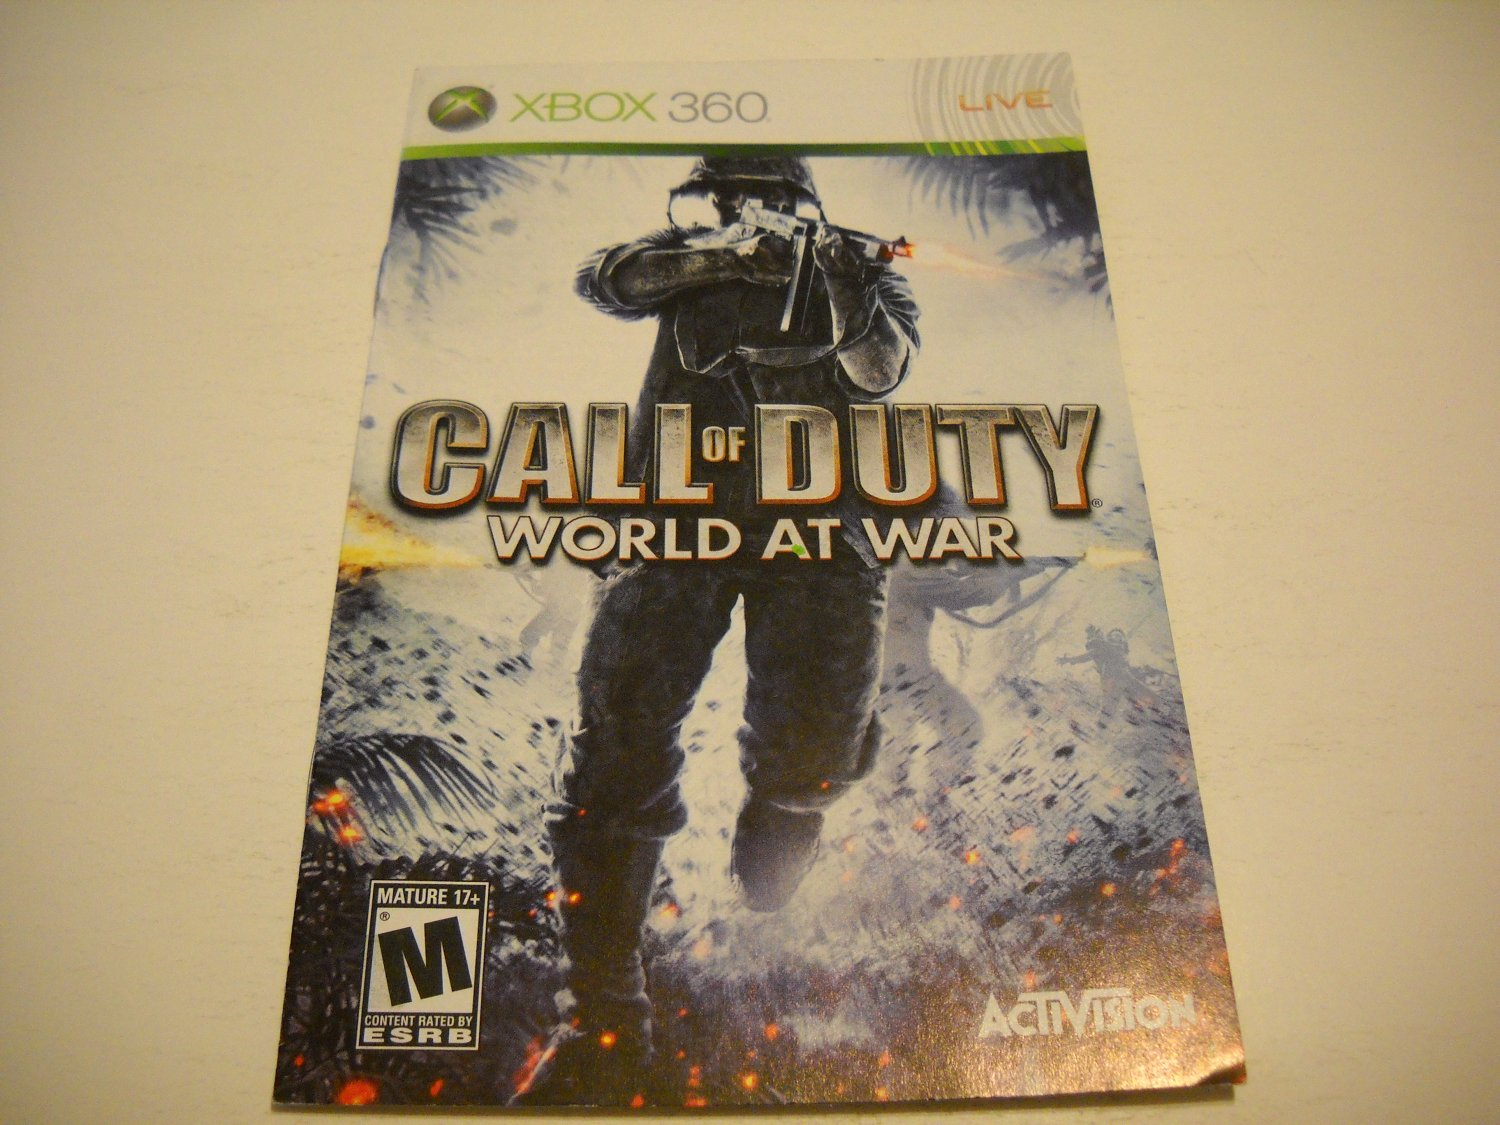 Manual ONLY ~  for Call of Duty World at War   - Xbox 360 Instruction Booklet